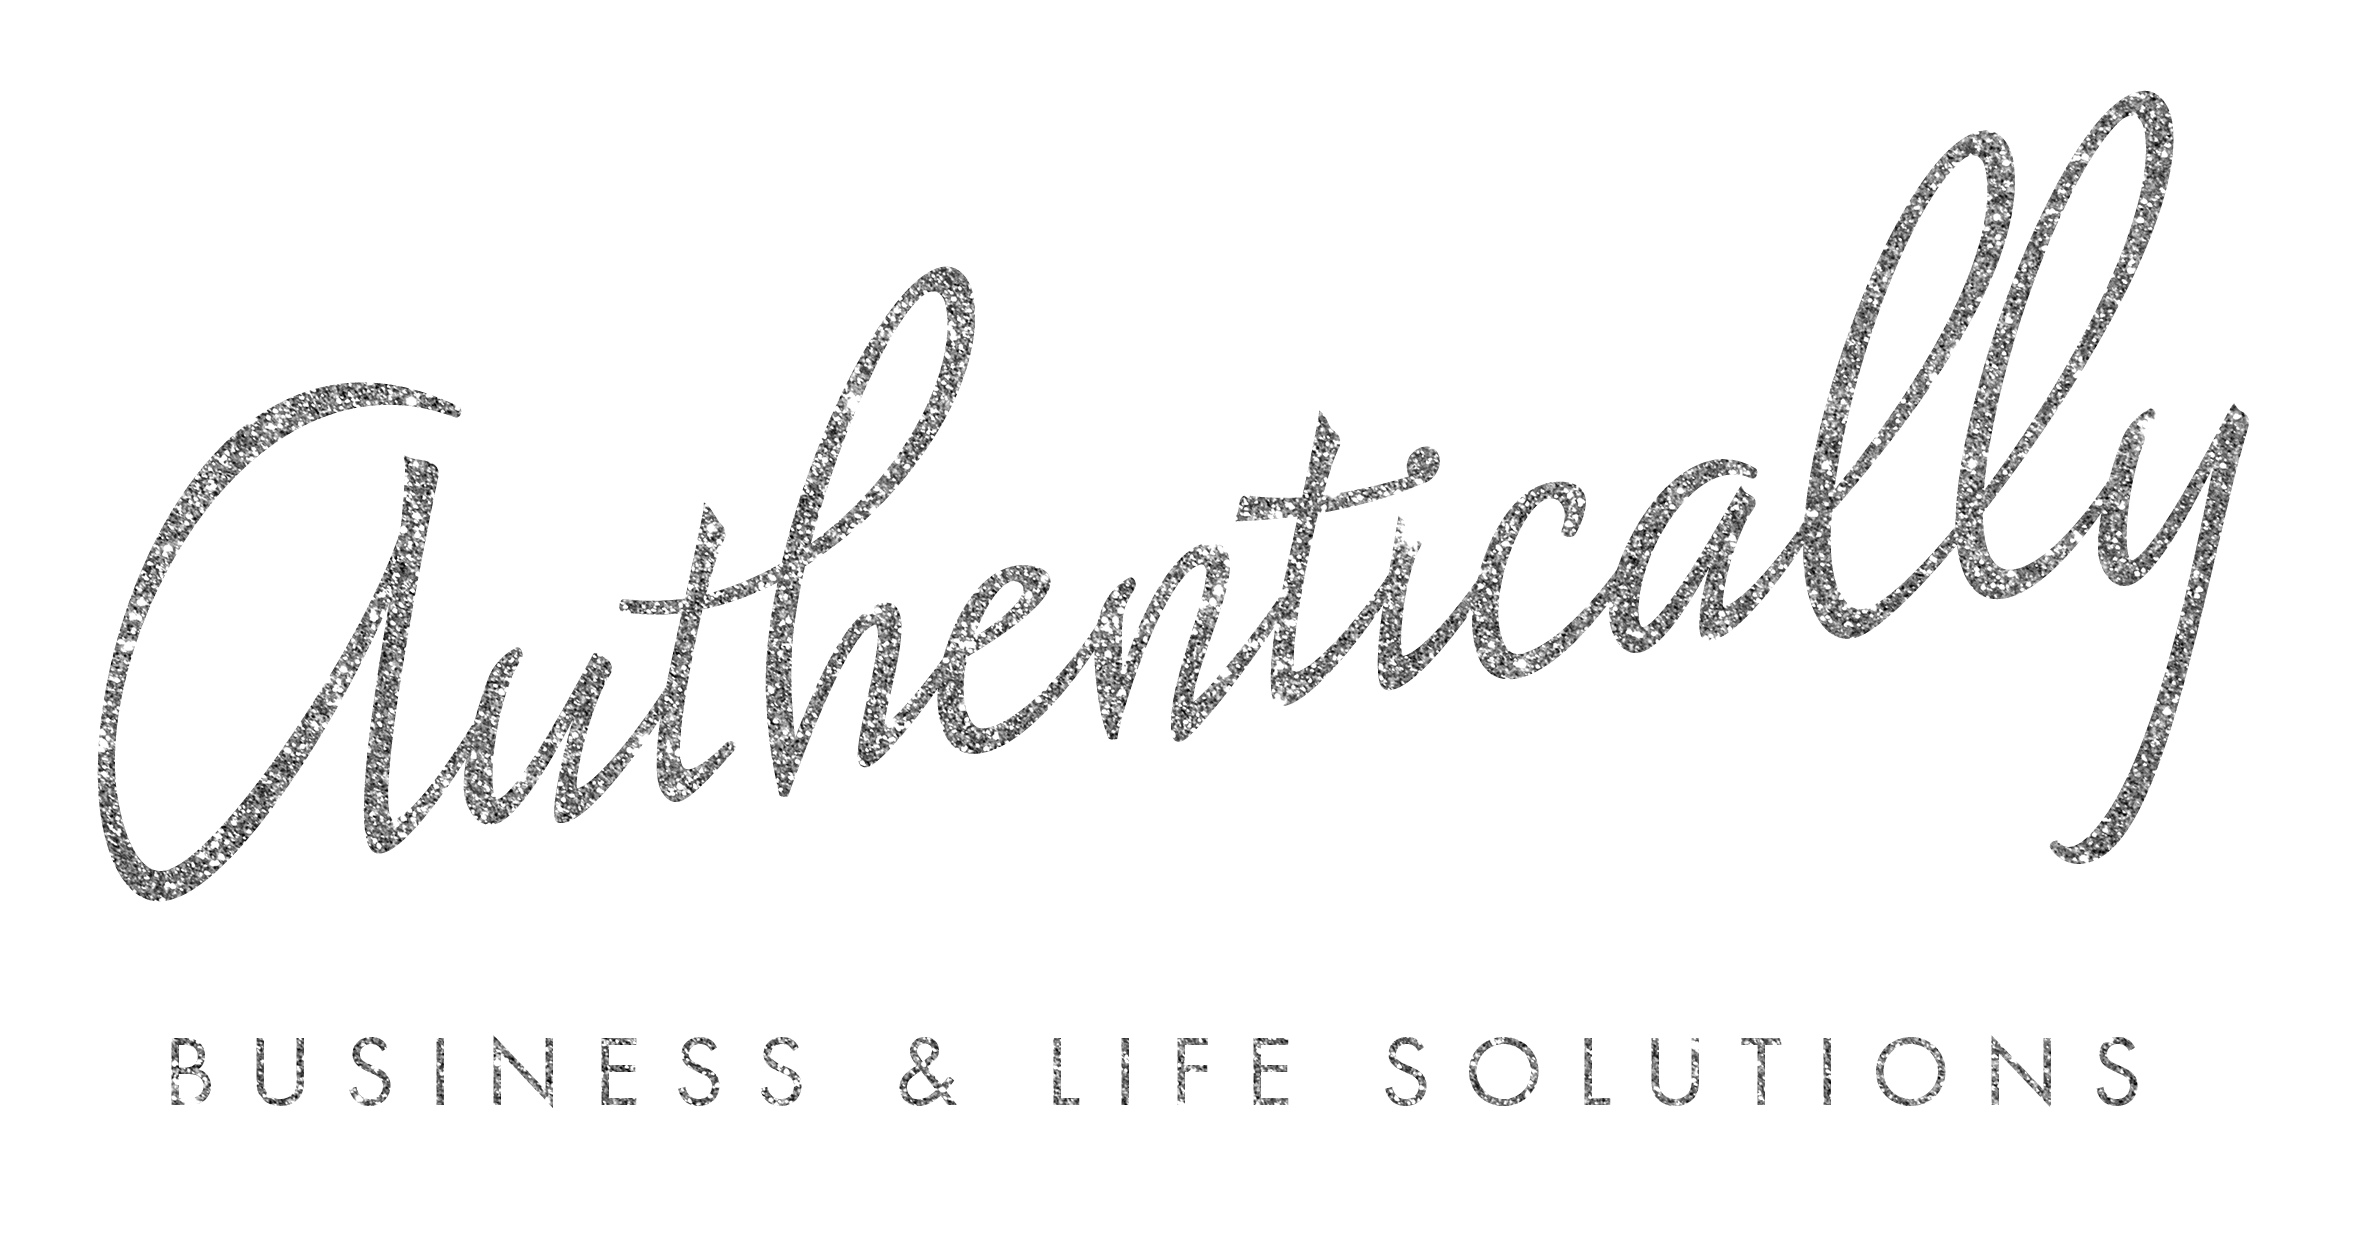 Authentically Business & Life Solutions Logo